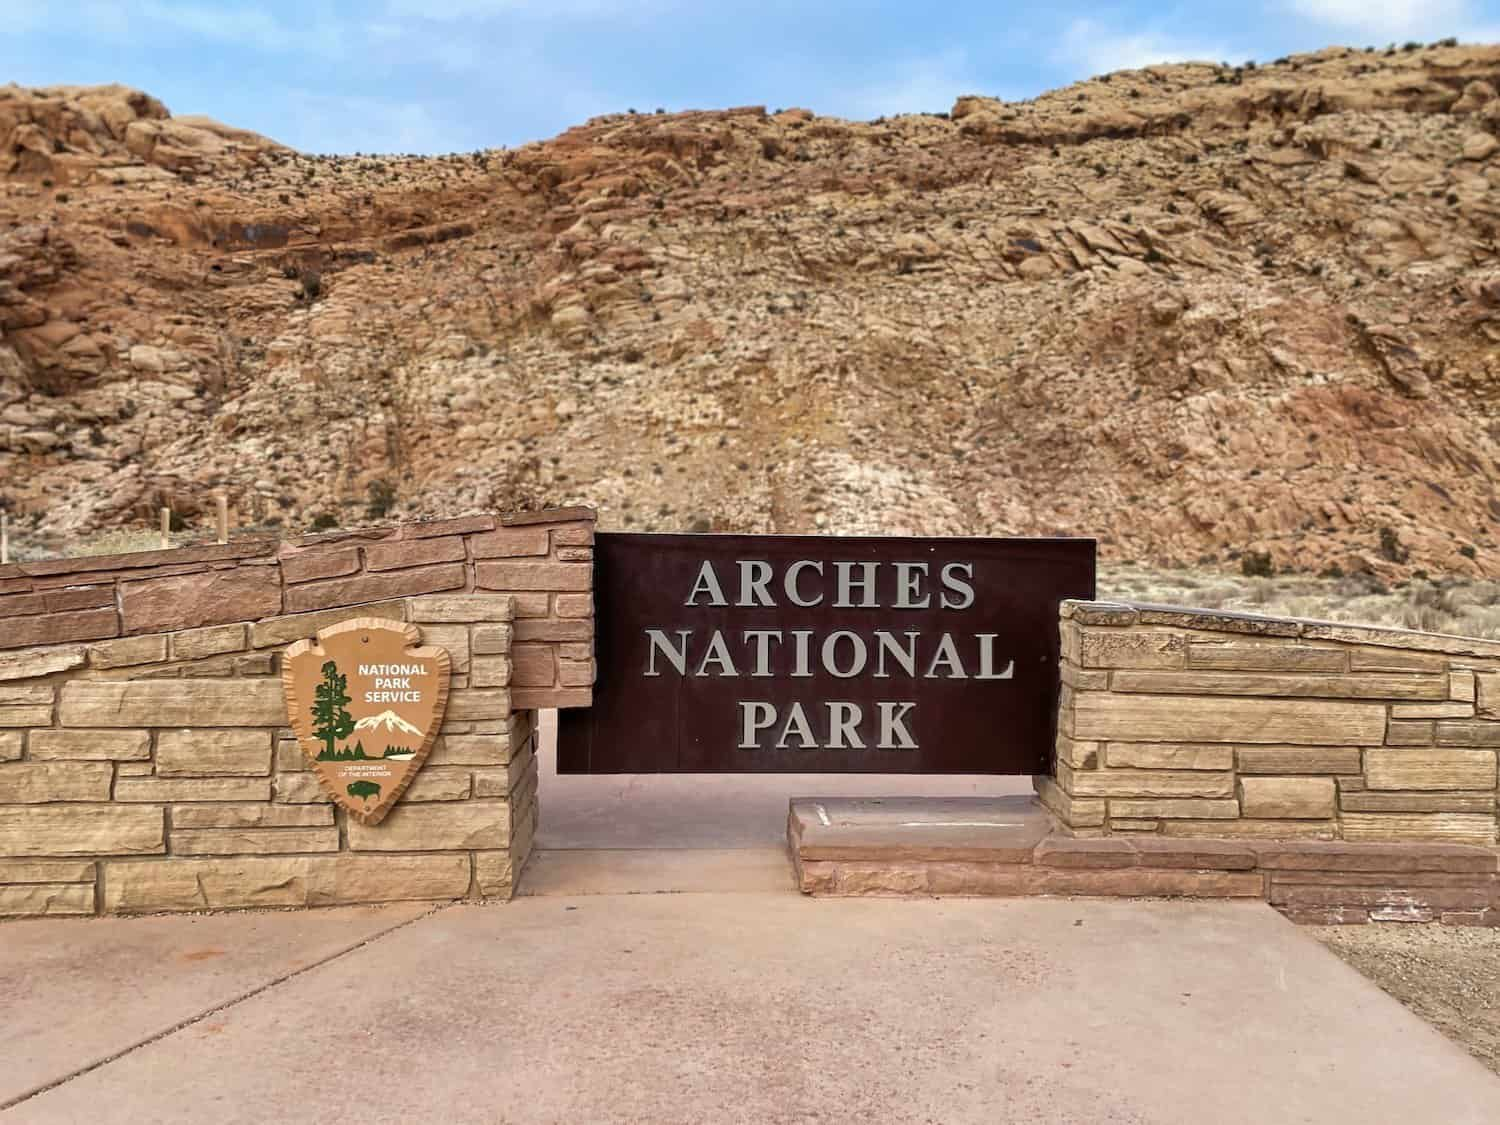 Arches National Park Entry Sign